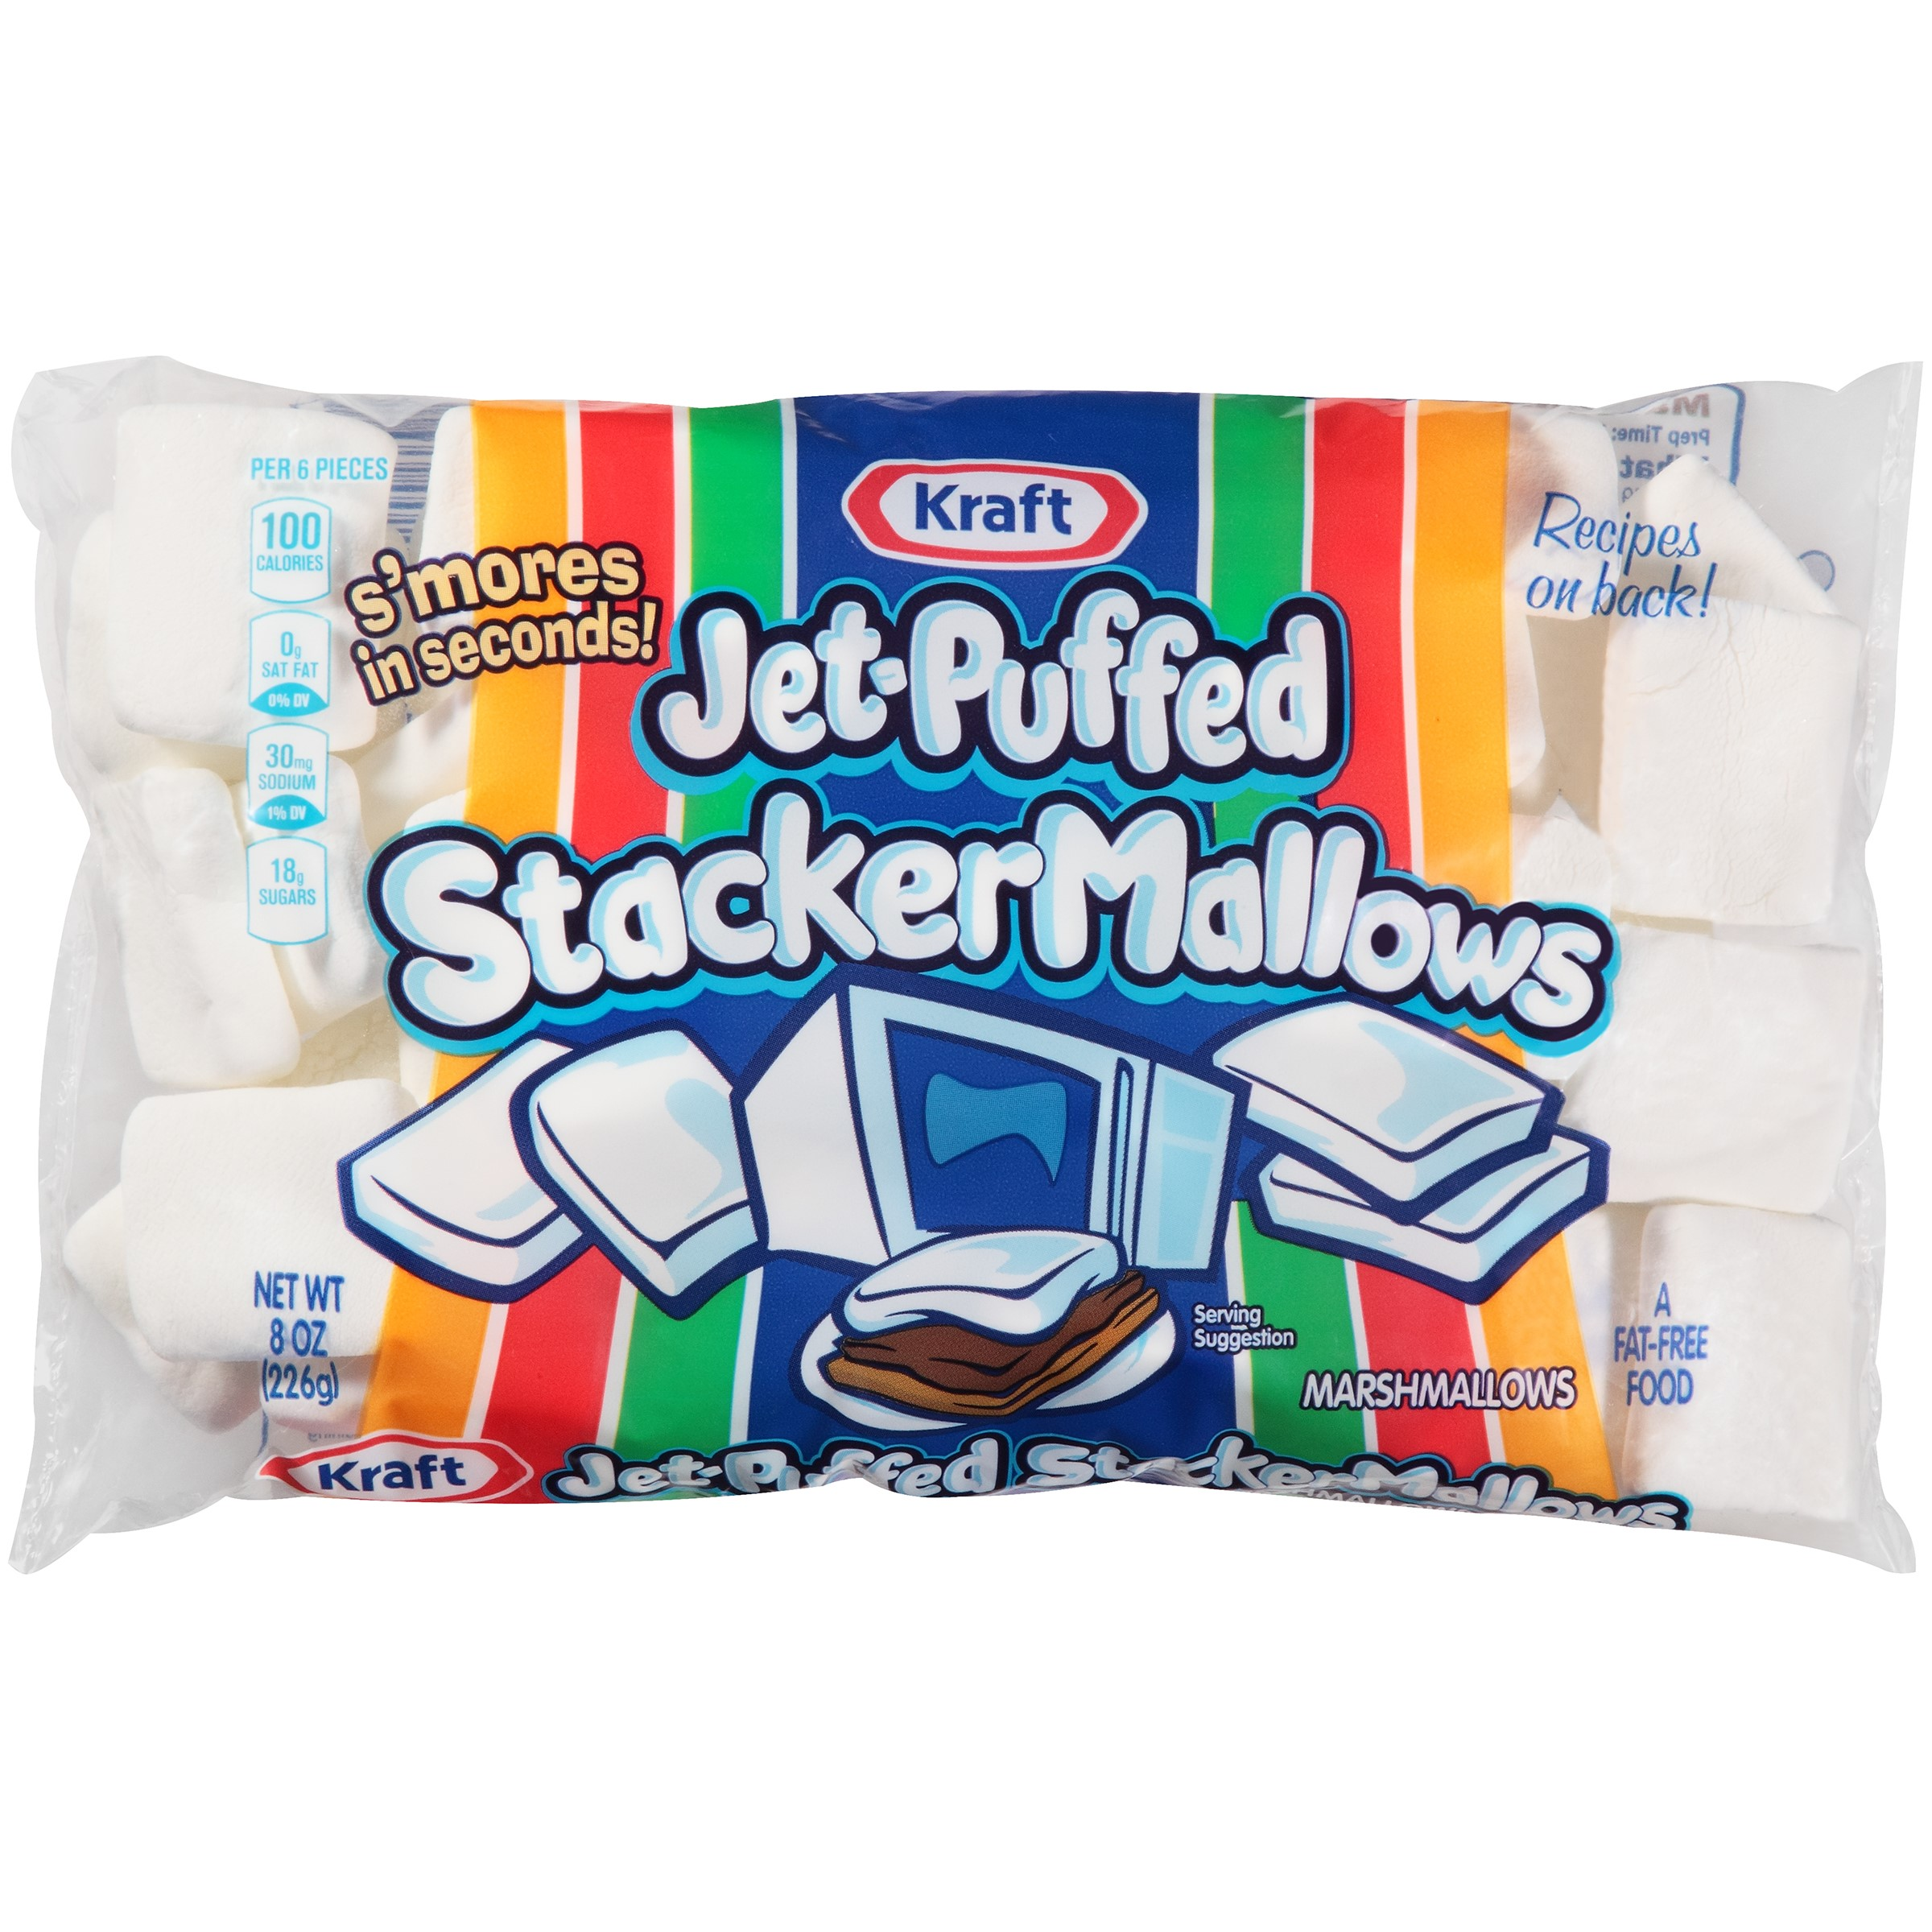 Kraft Jet-Puffed StackerMallows Marshmallows 8 oz. Bag